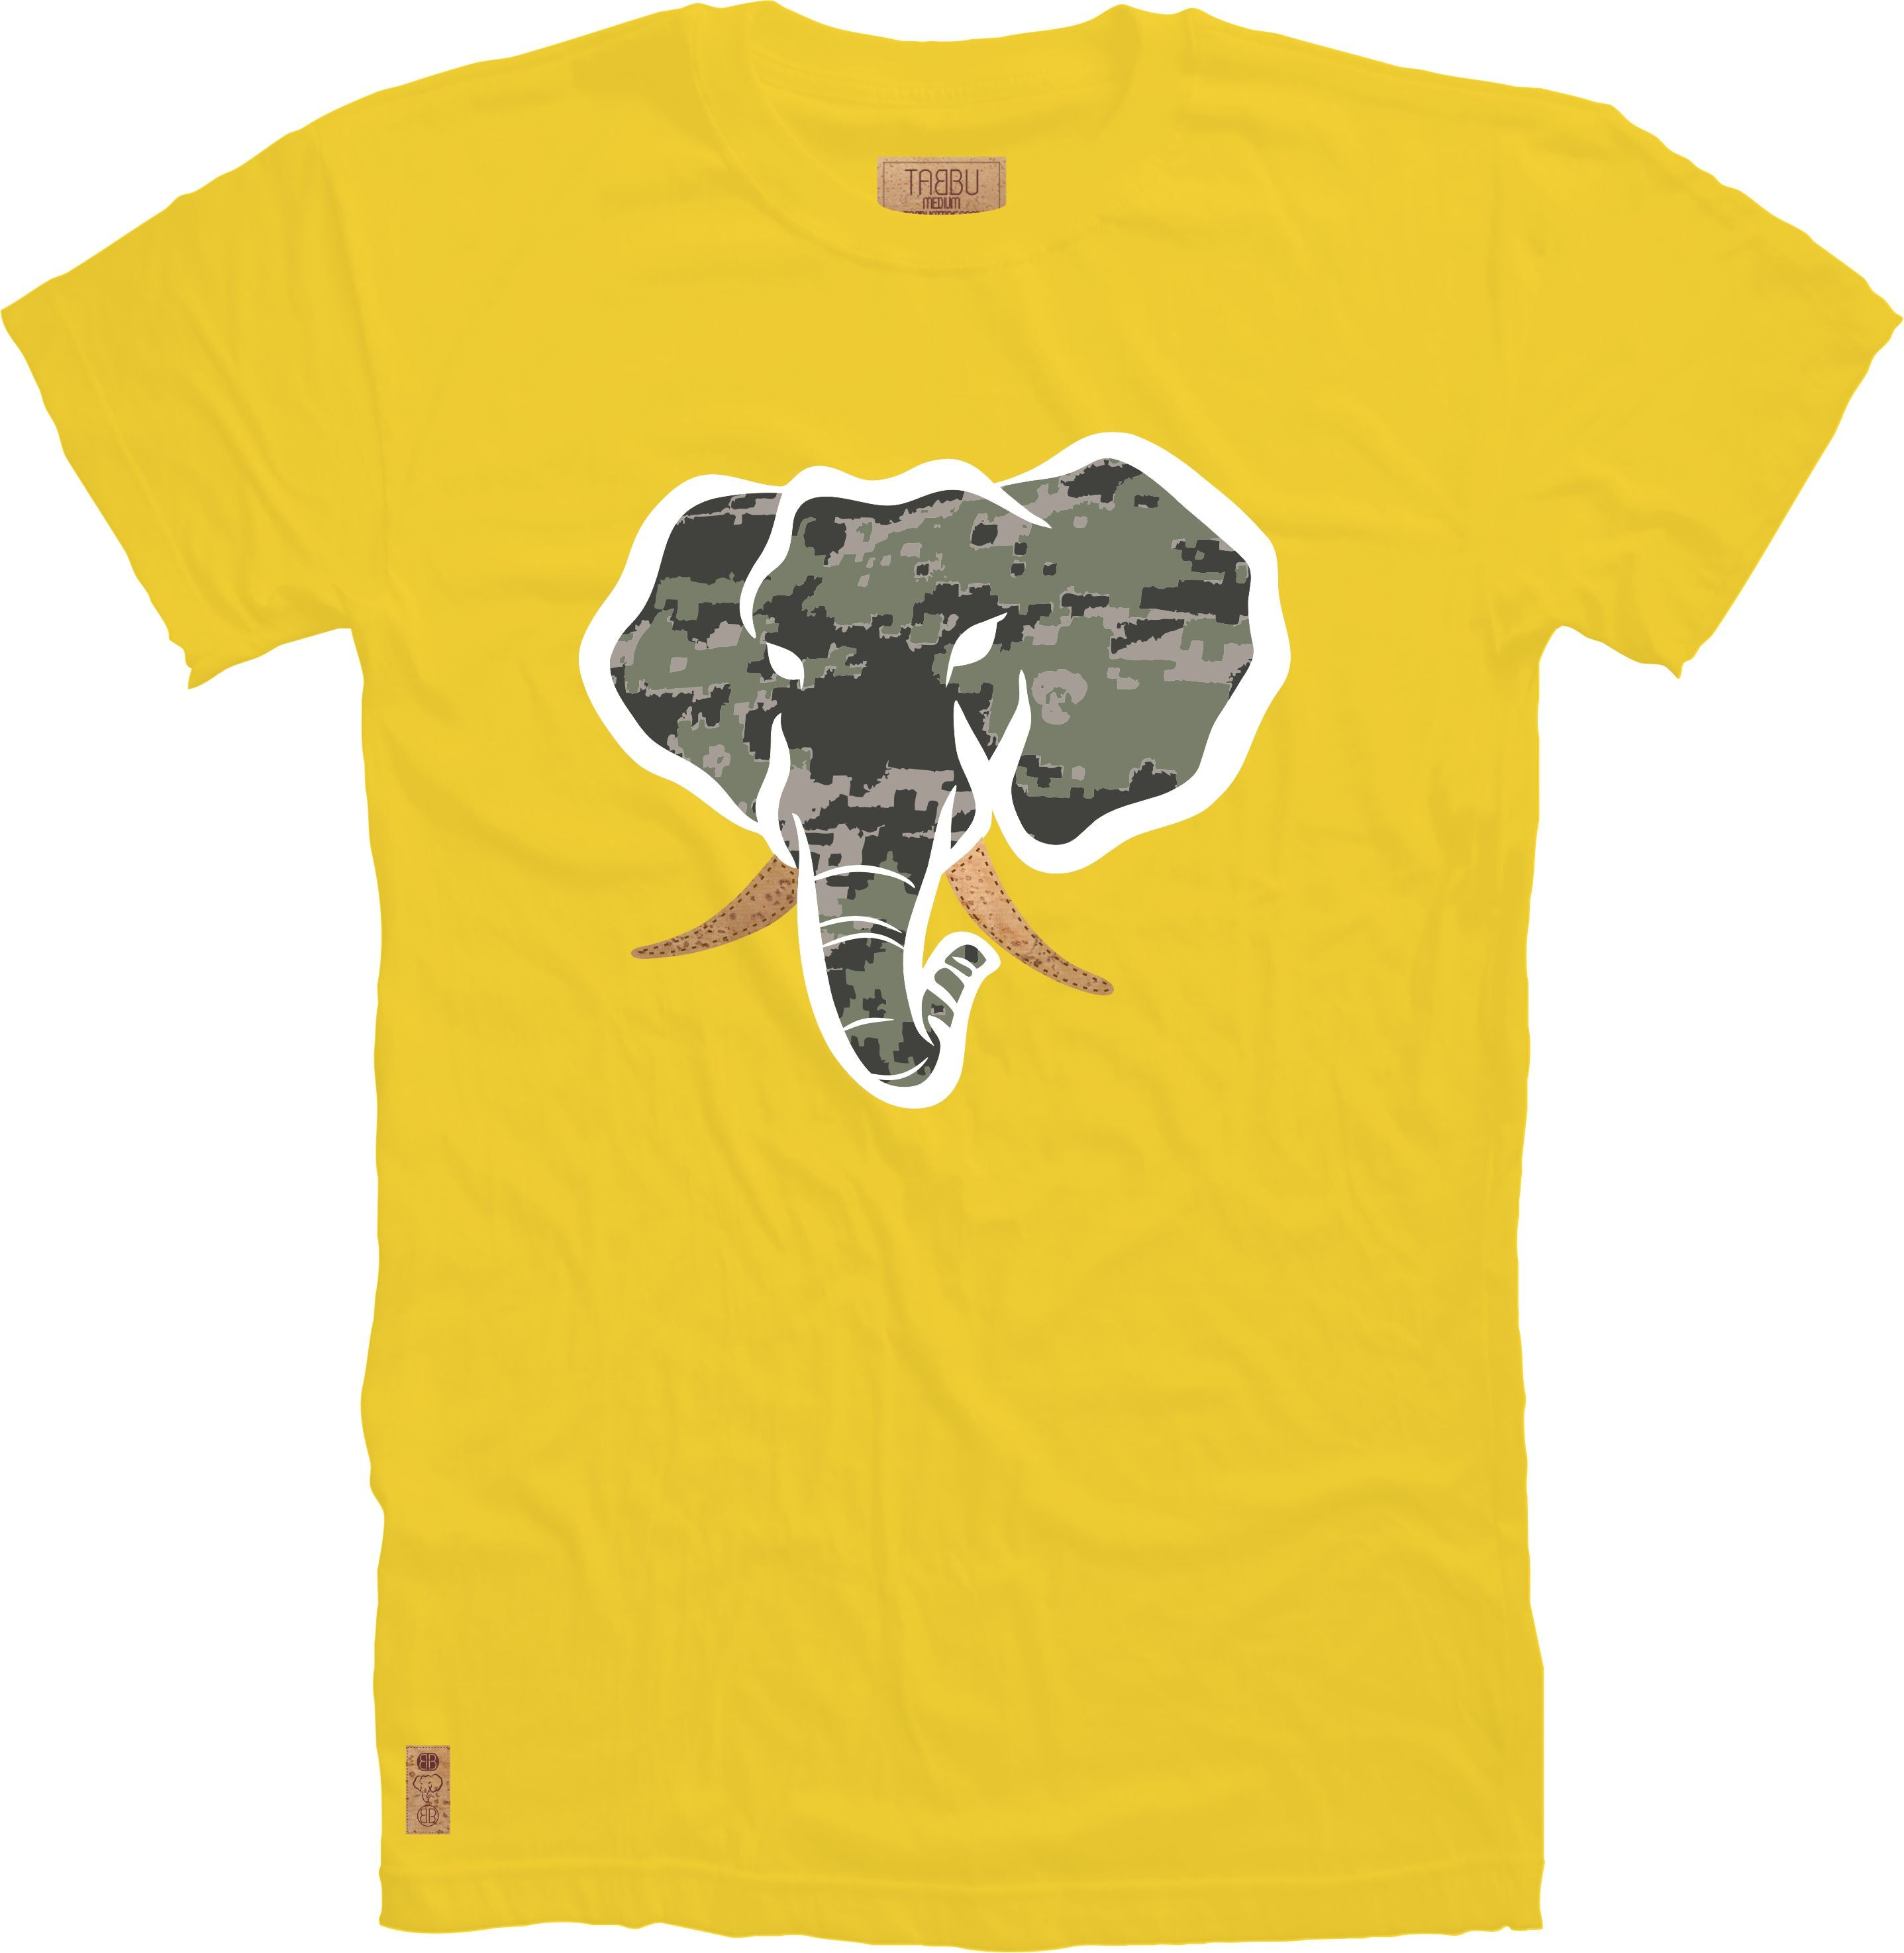 Trunk Insert Crewneck Tee in Yellow